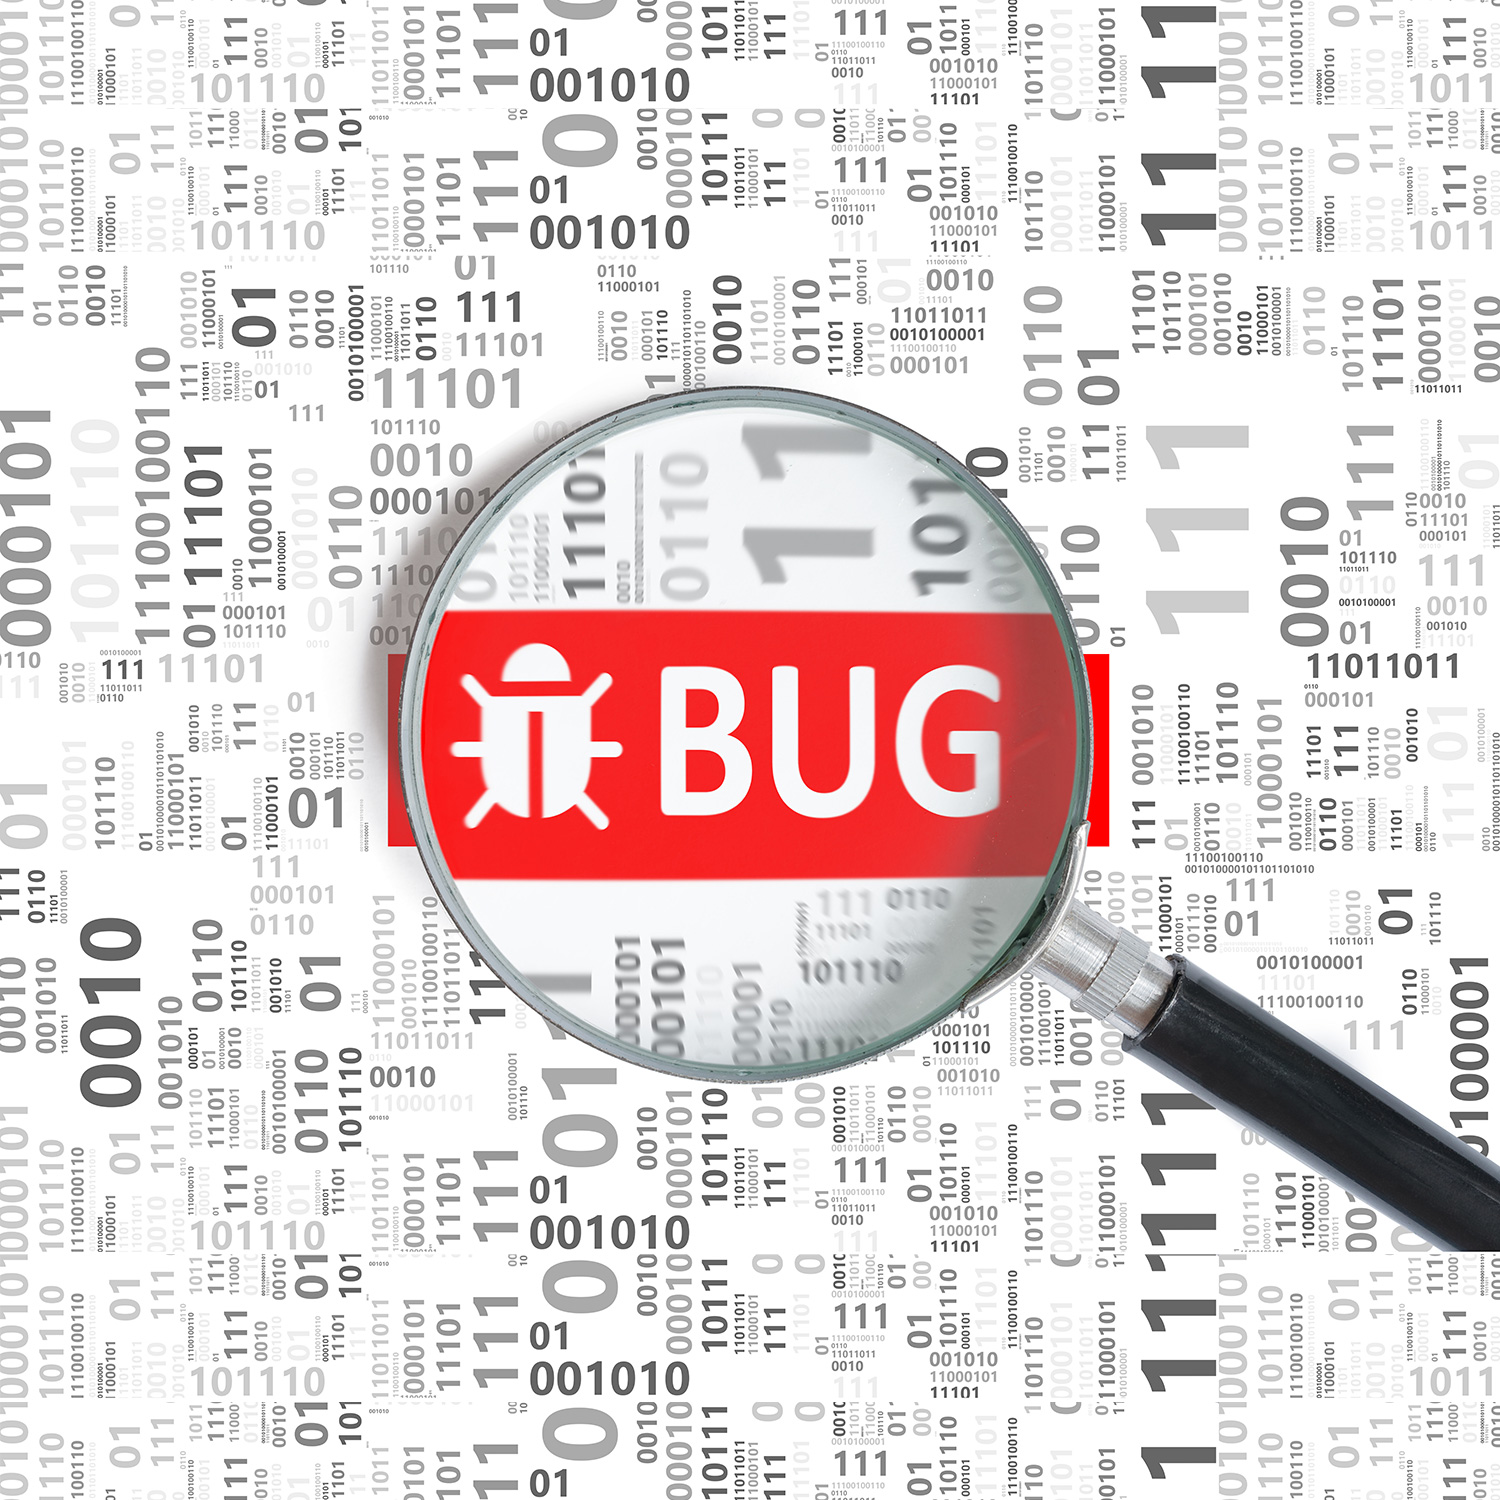 The Via Bug Bounty Program